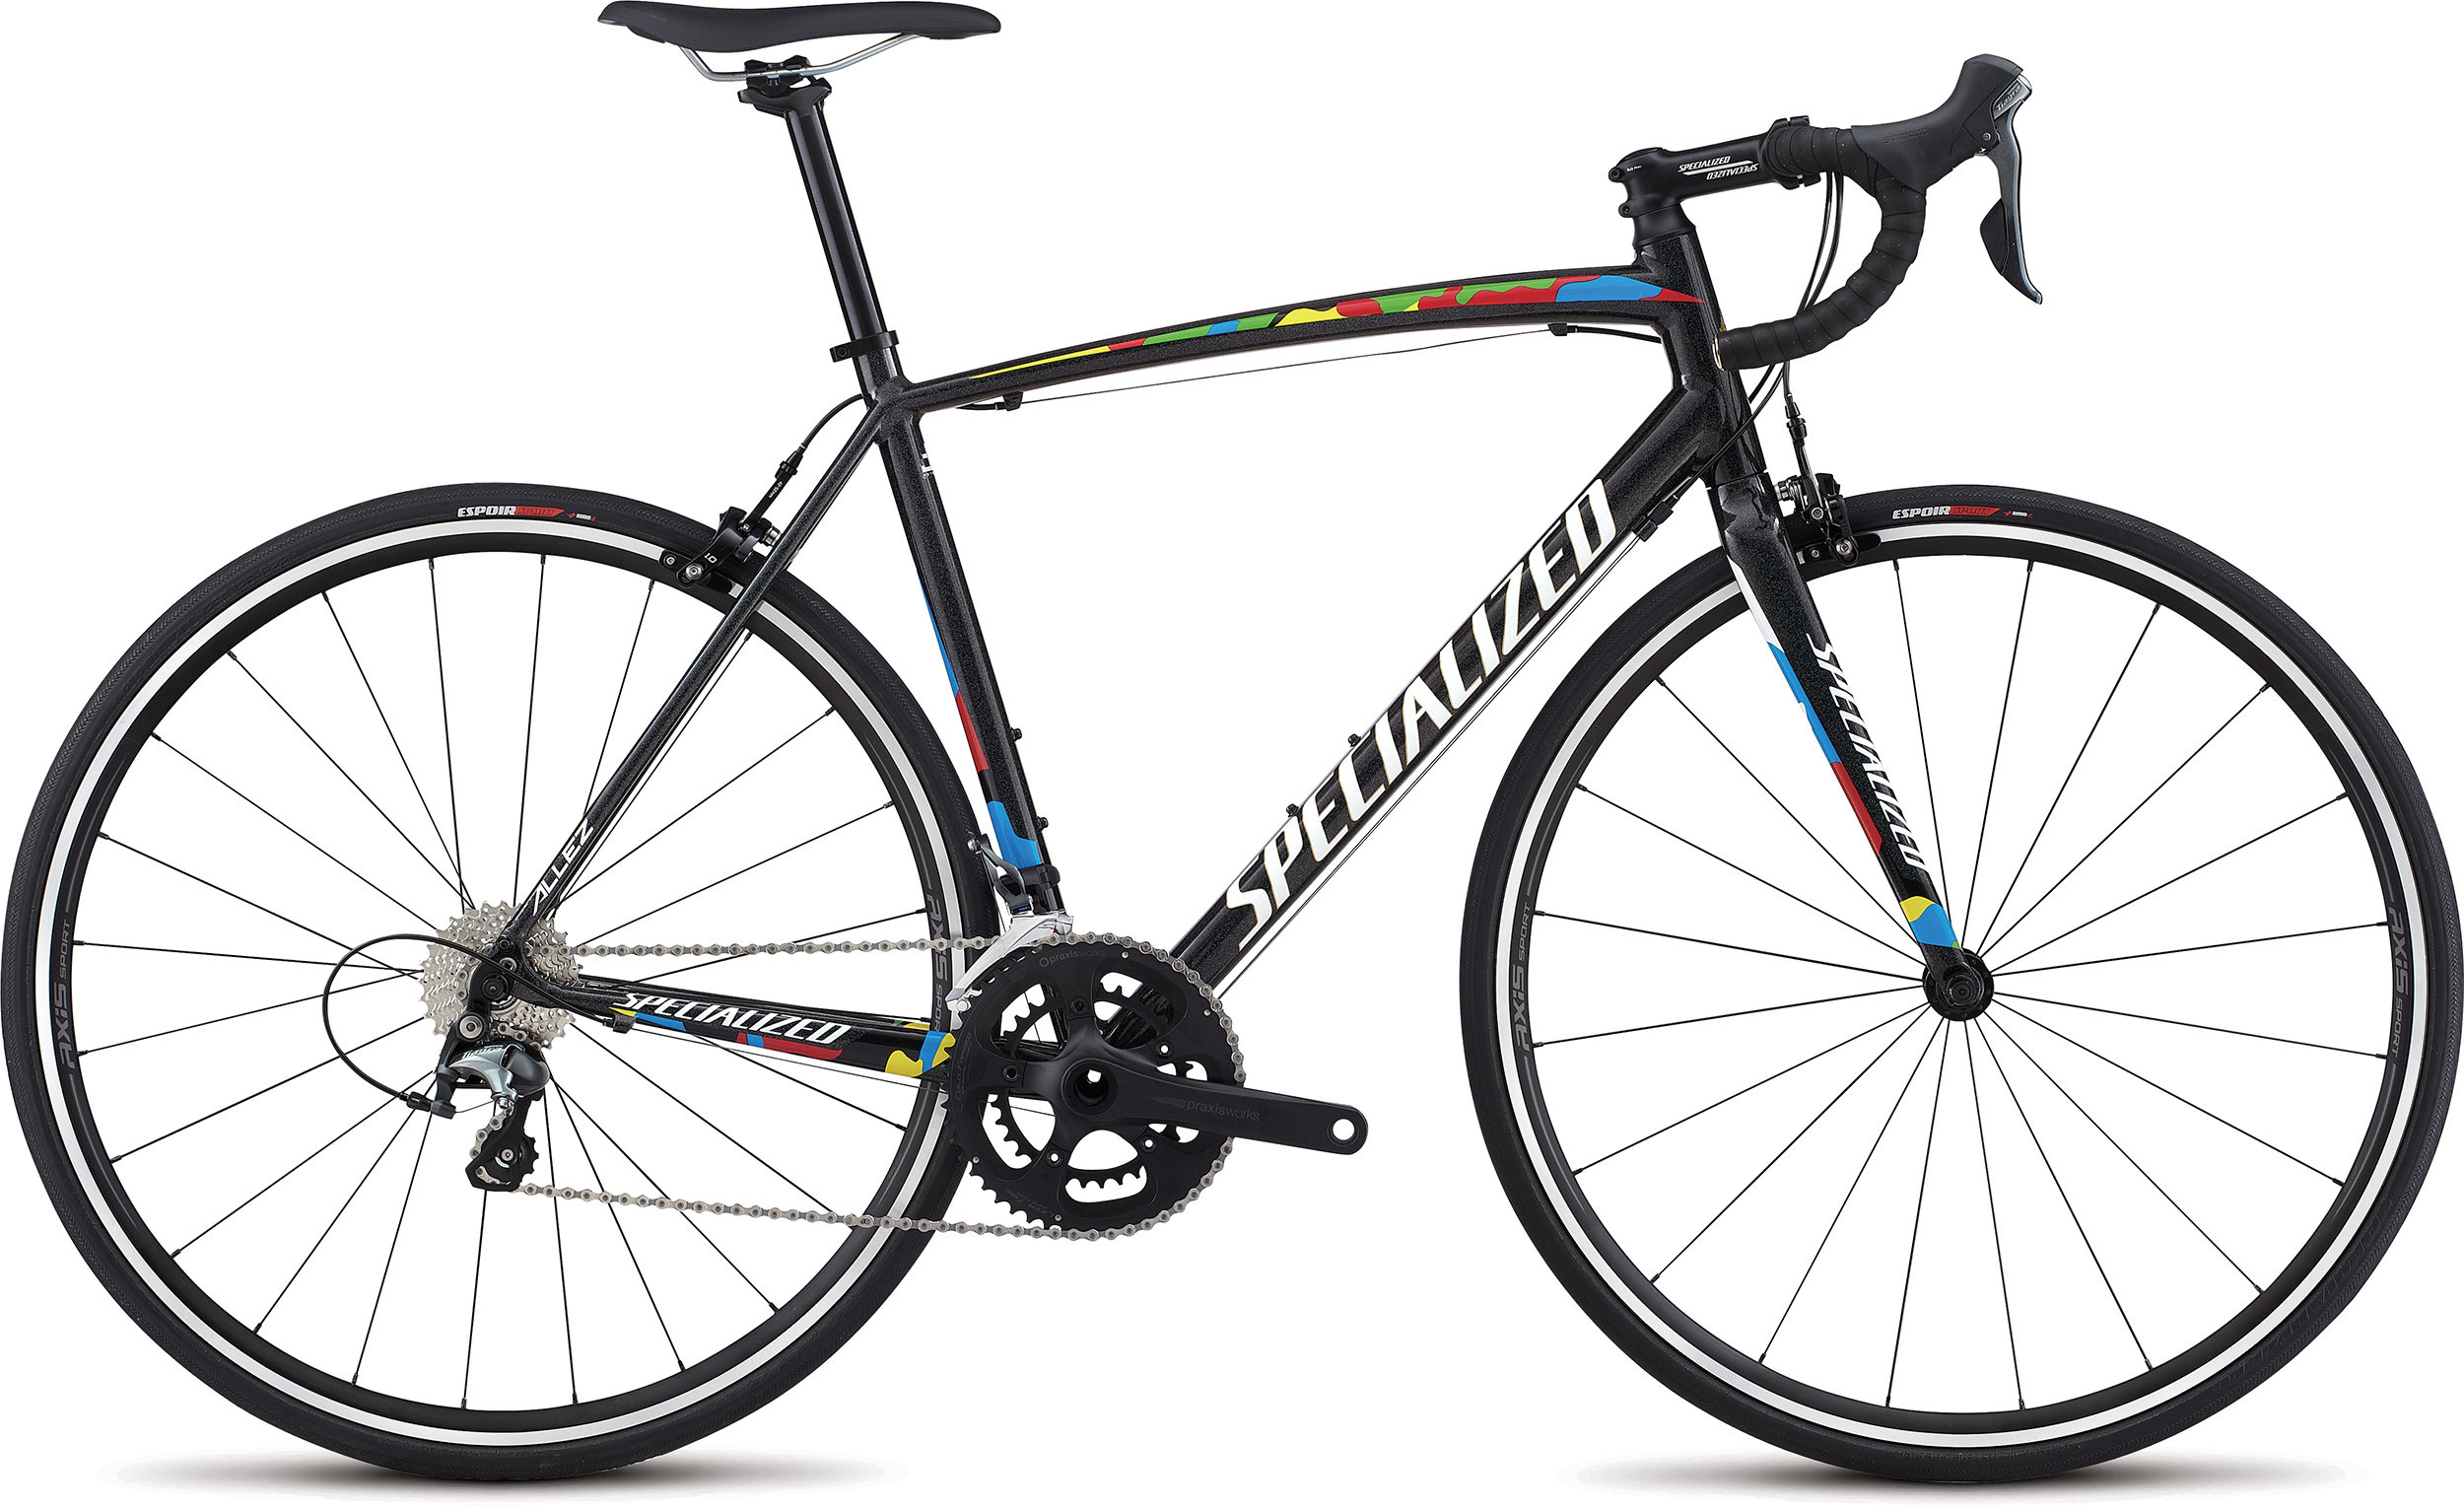 SPECIALIZED ALLEZ E5 ELITE SAGAN WC 54 - SPECIALIZED ALLEZ E5 ELITE SAGAN WC 54